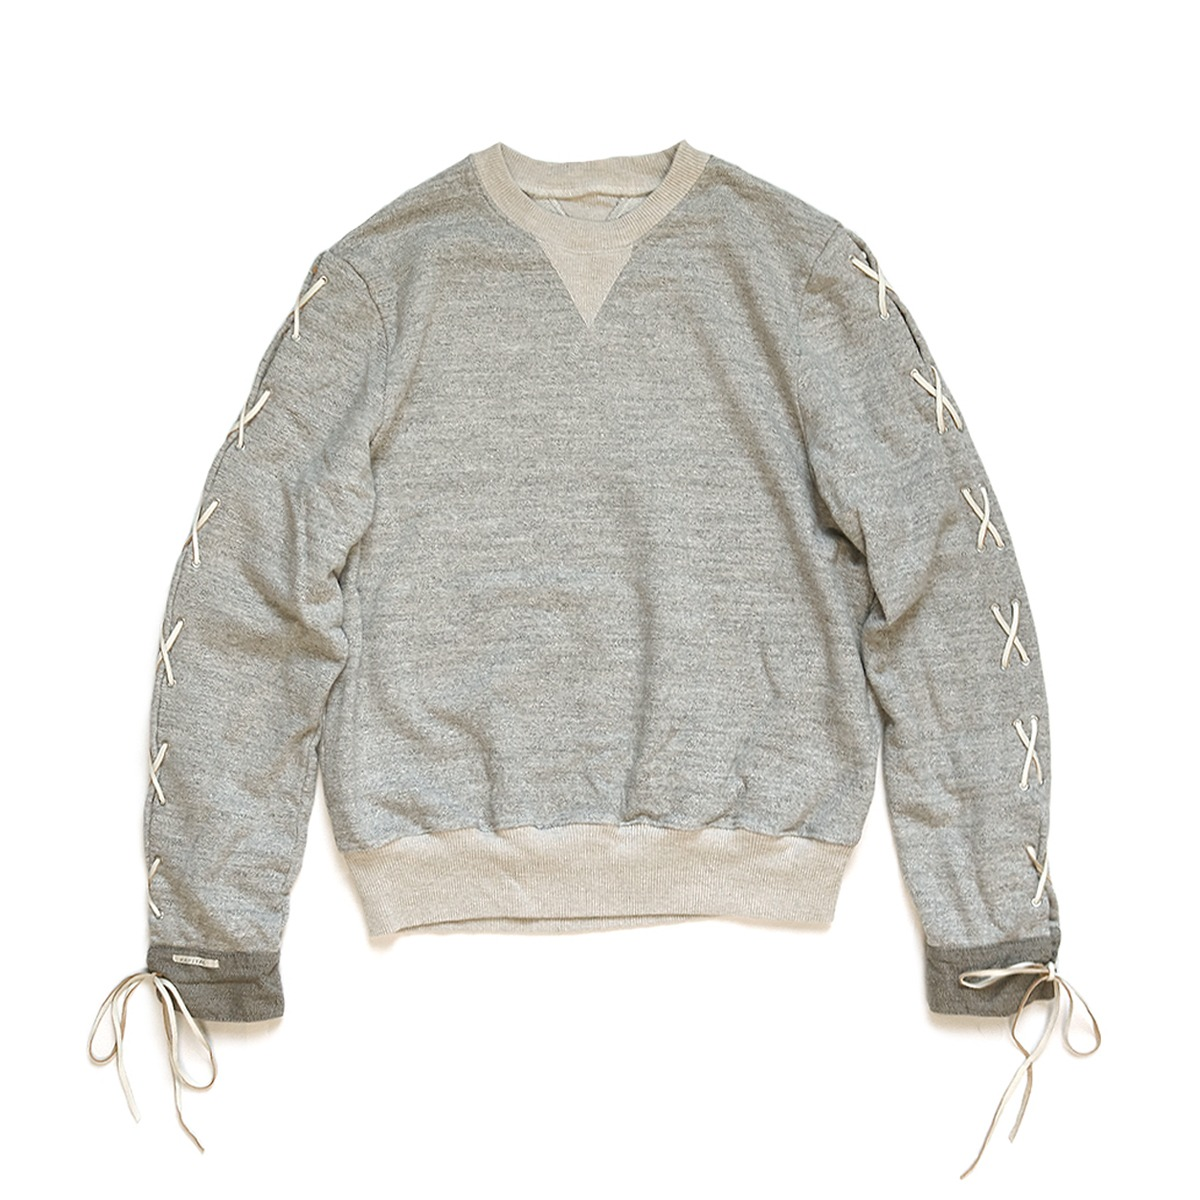 [KAPITAL] TOP FLEECE KNIT LACE-UP SLEEVE SWT 'GREY'